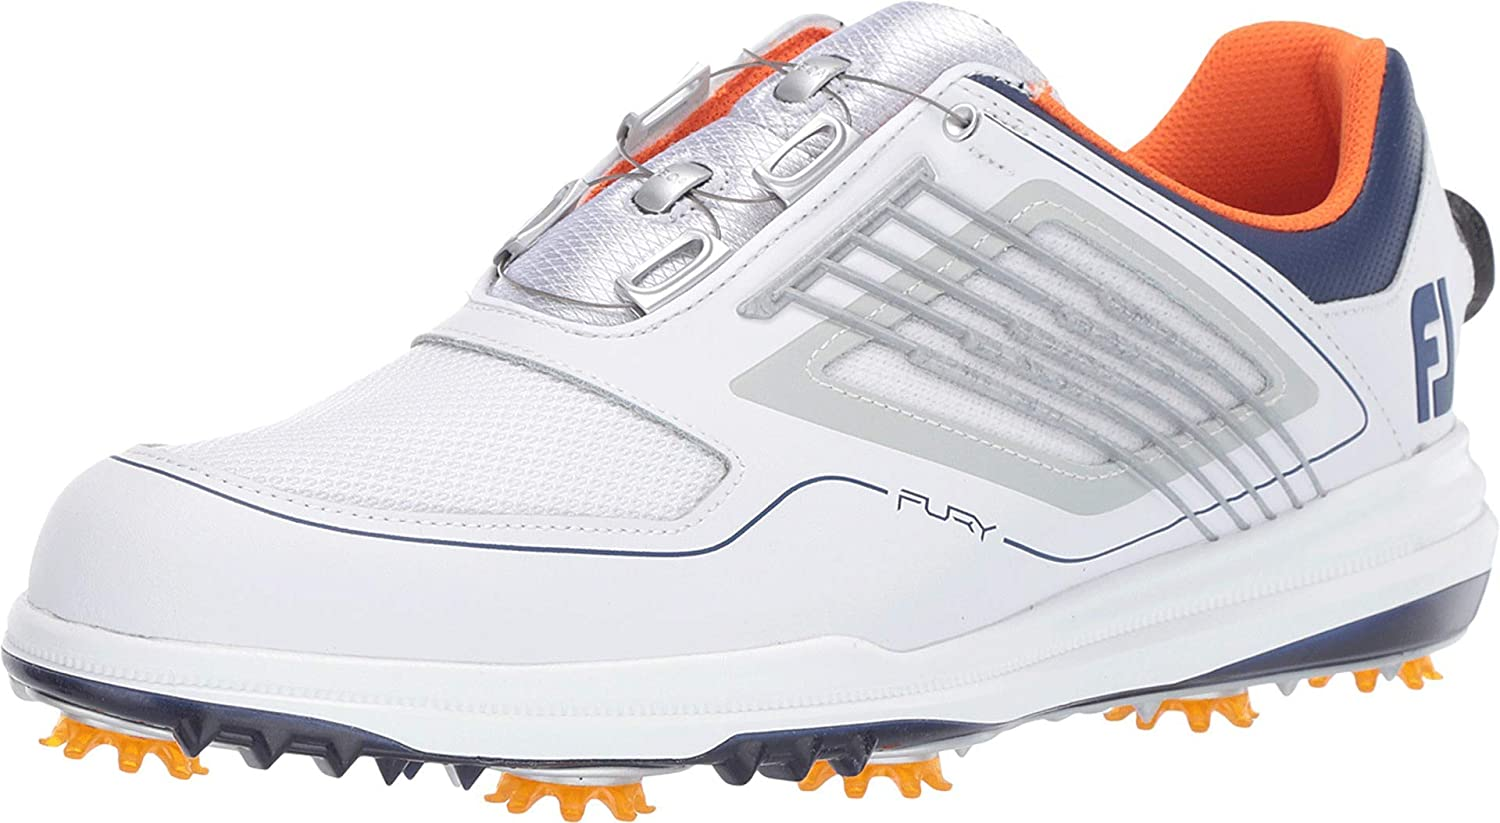 FootJoy Men's Fury Golf Shoes Price reduction At the price Boa